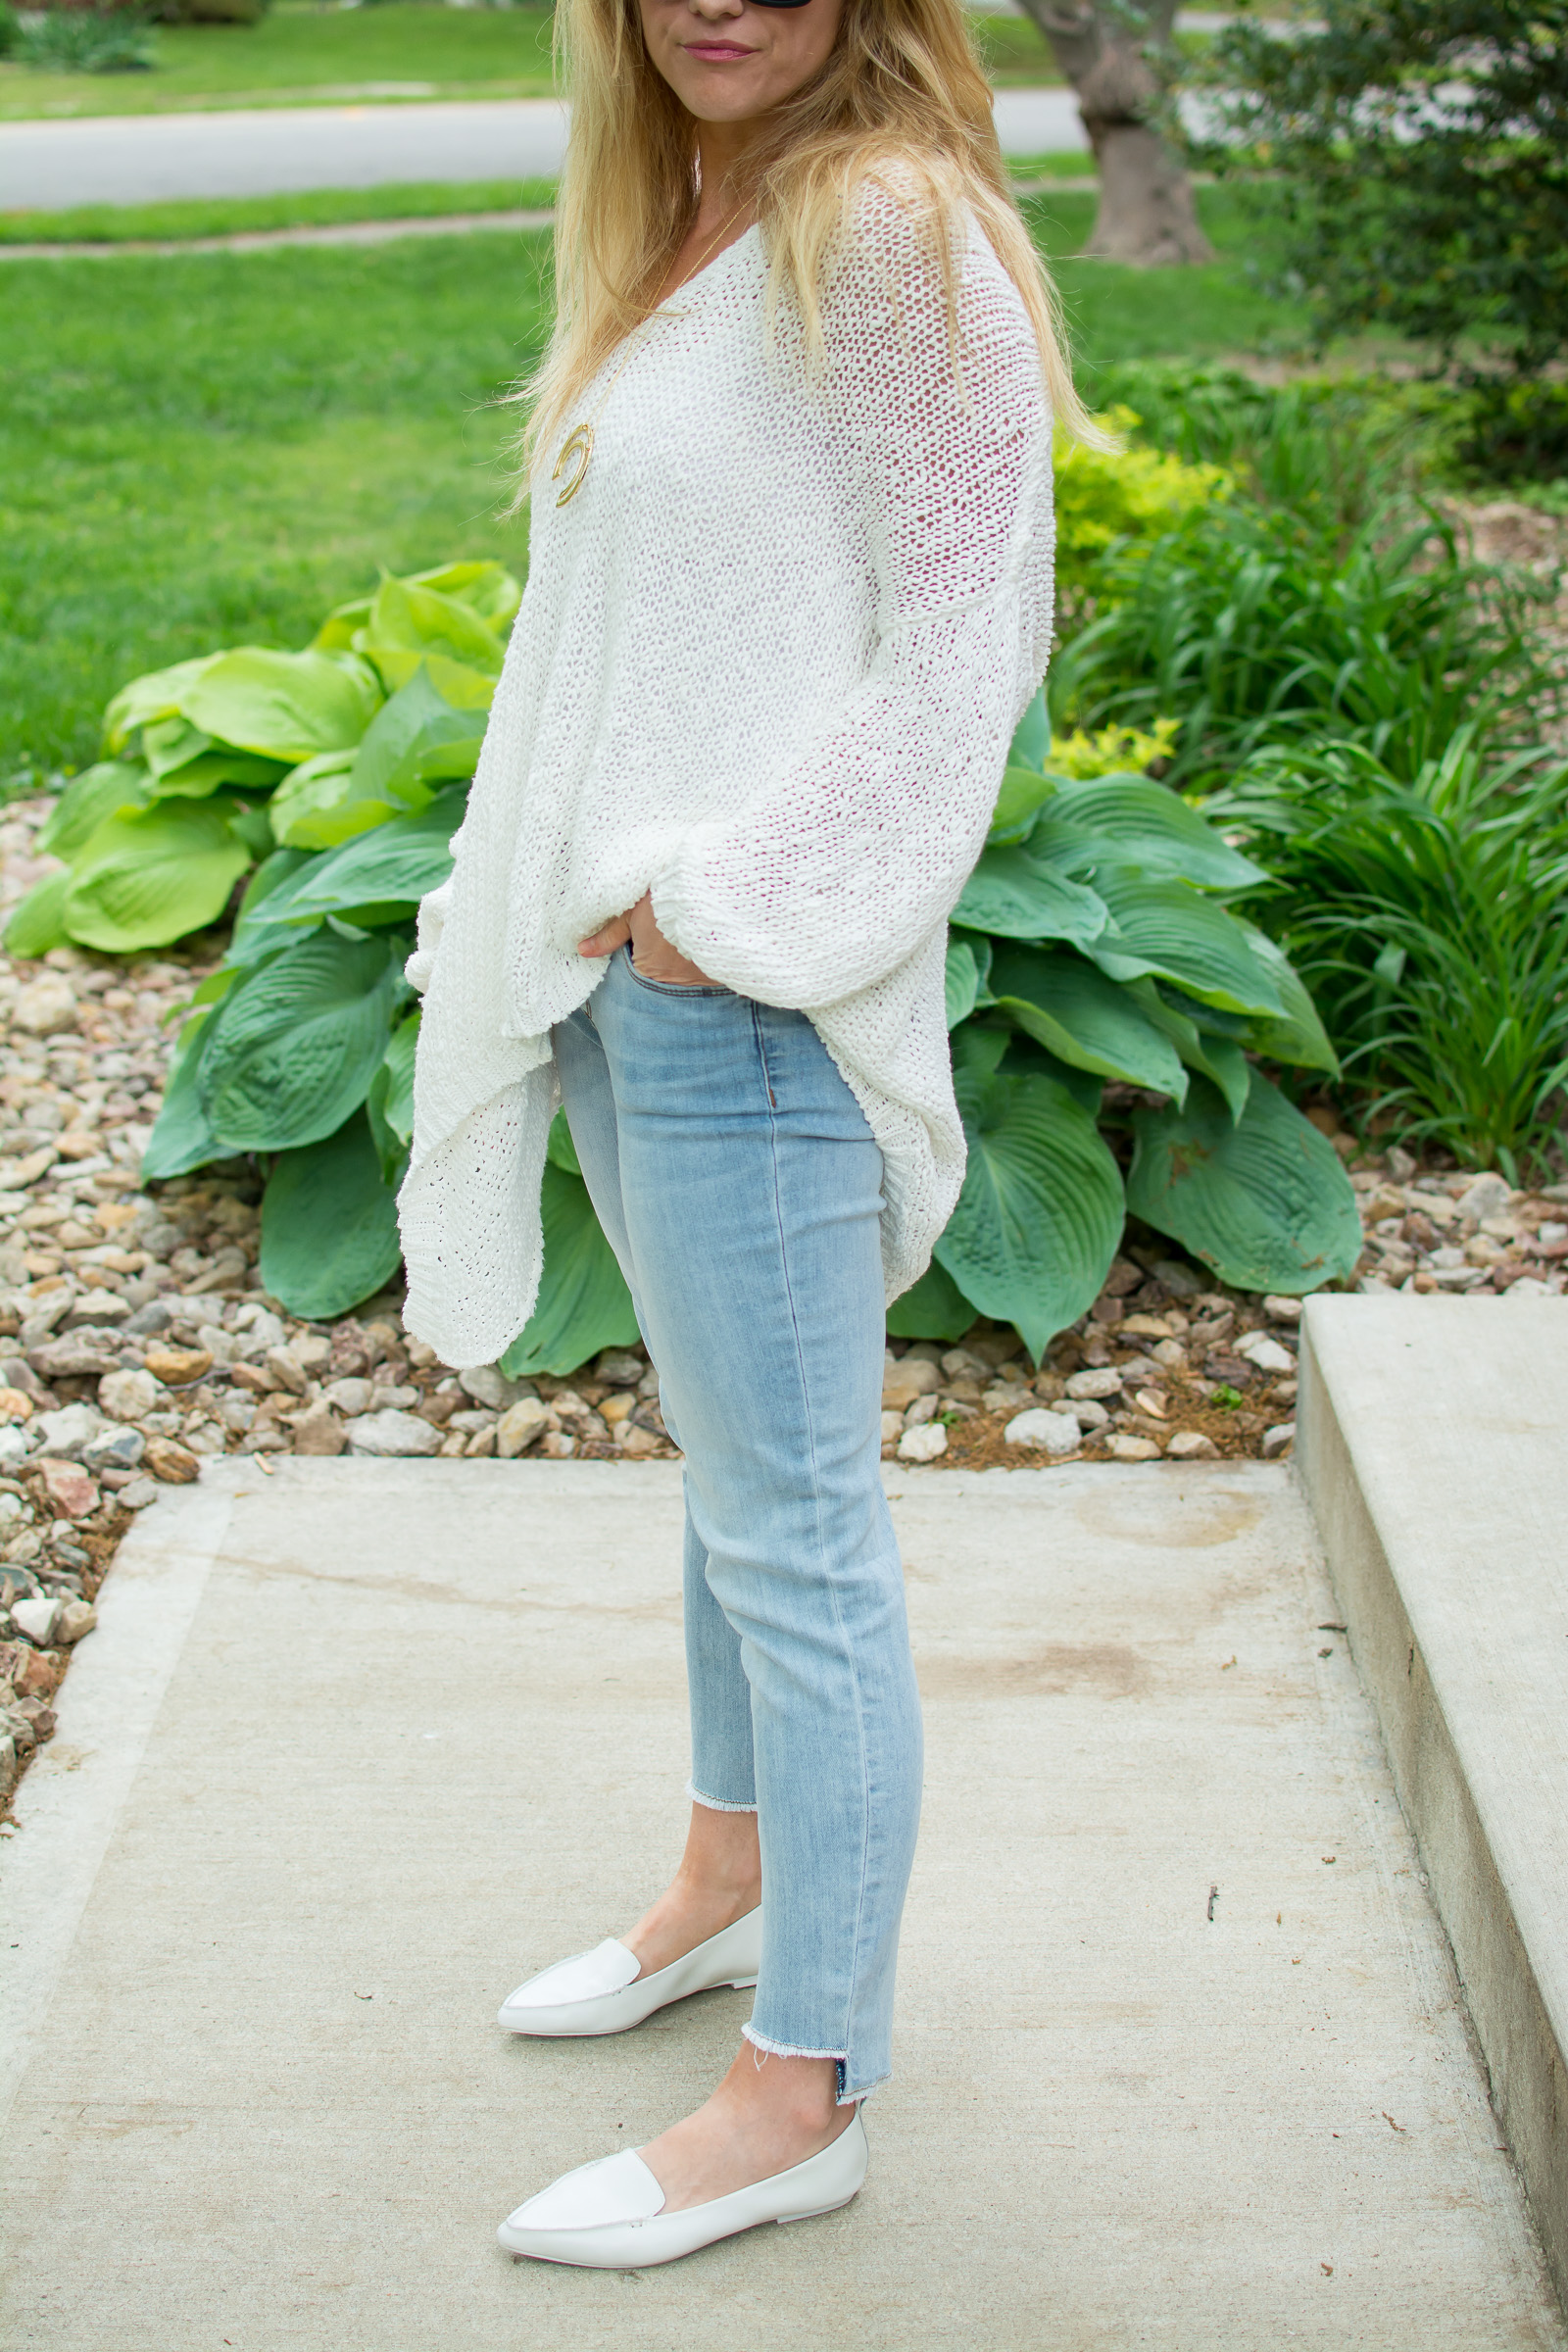 Styling Spring Whites with a Free People Sweater. | Ashley from LSR